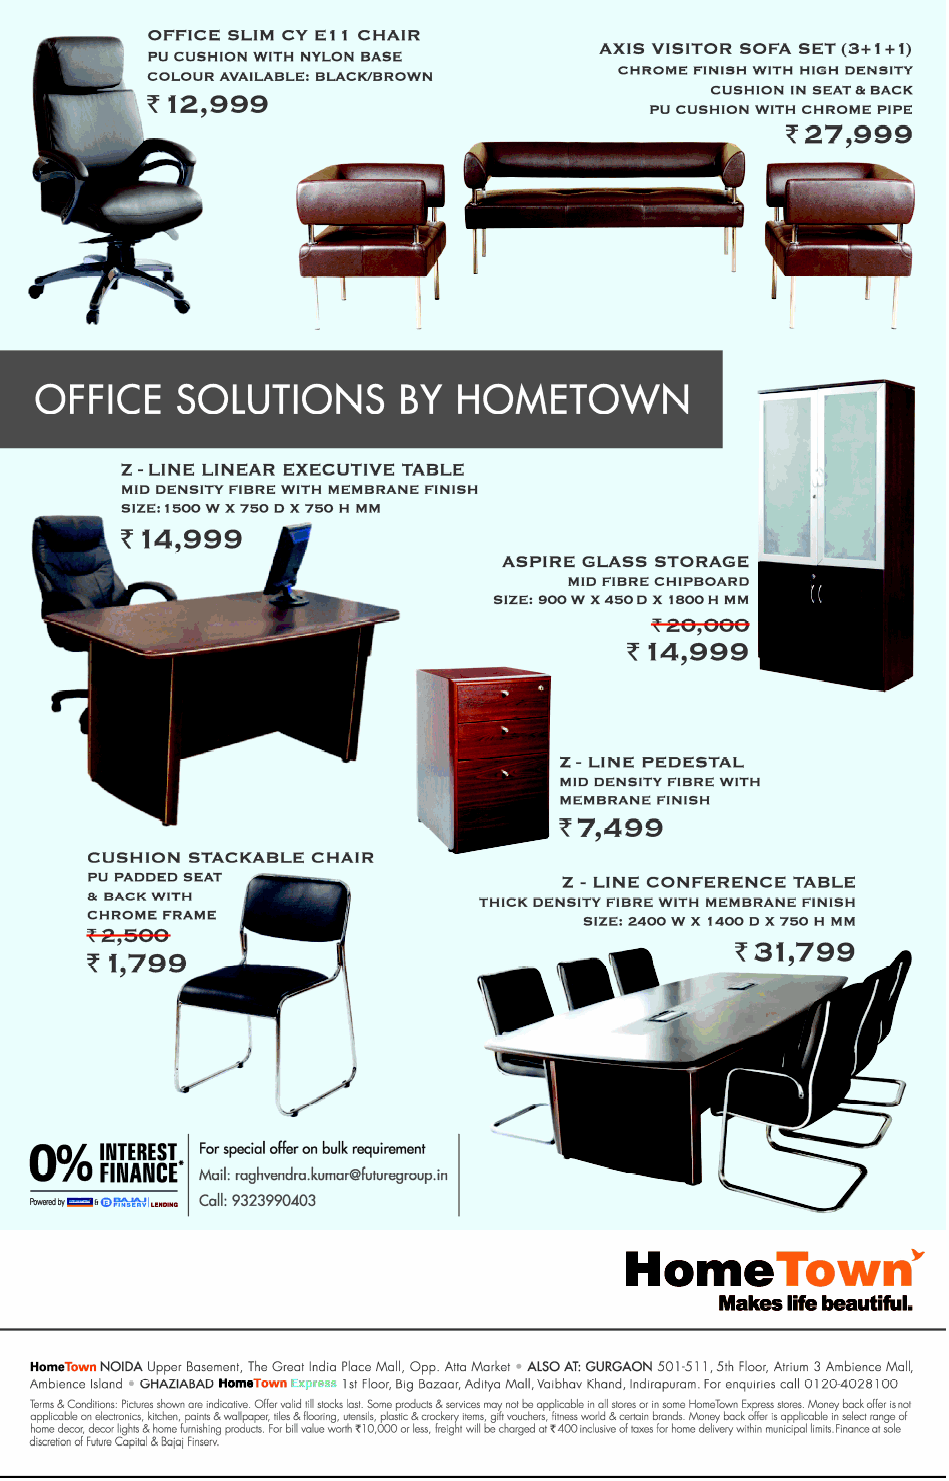 Home town office furniture 0 interest finance mumbai for Furniture 0 finance